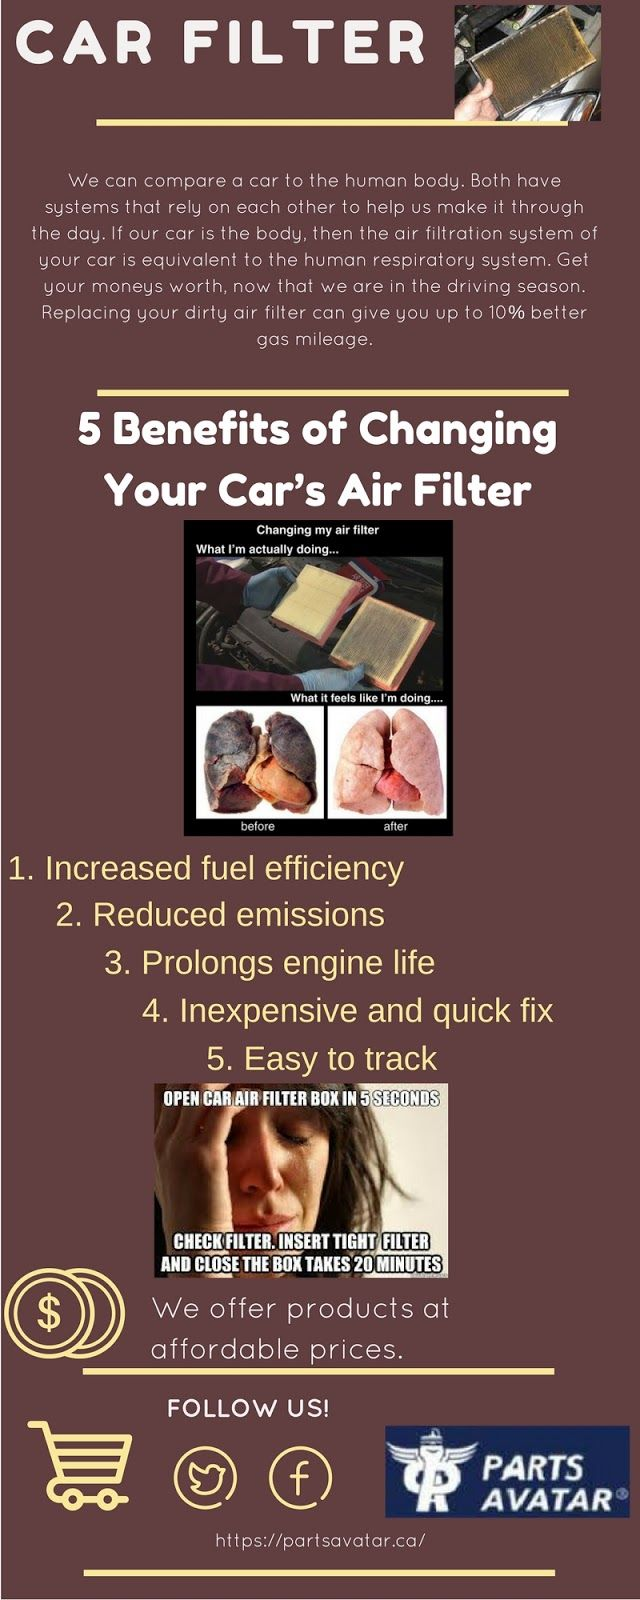 Keep those air filters clean to keep your engine running